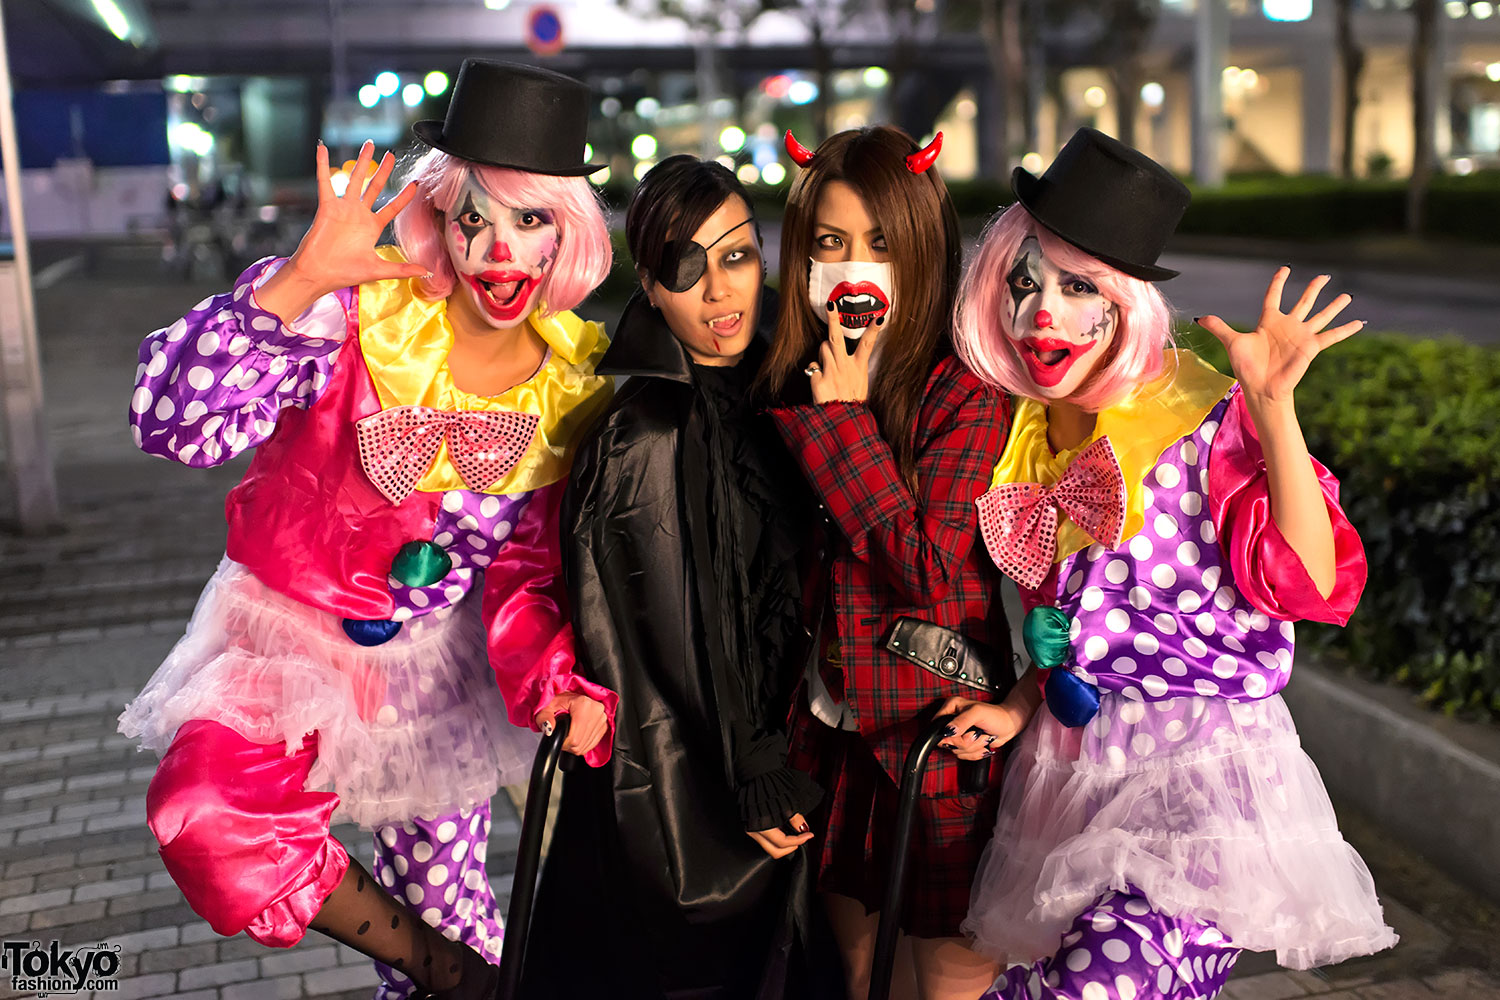 13 interesting facts about halloween celebration in us sharesprocket - What Is Halloween A Celebration Of